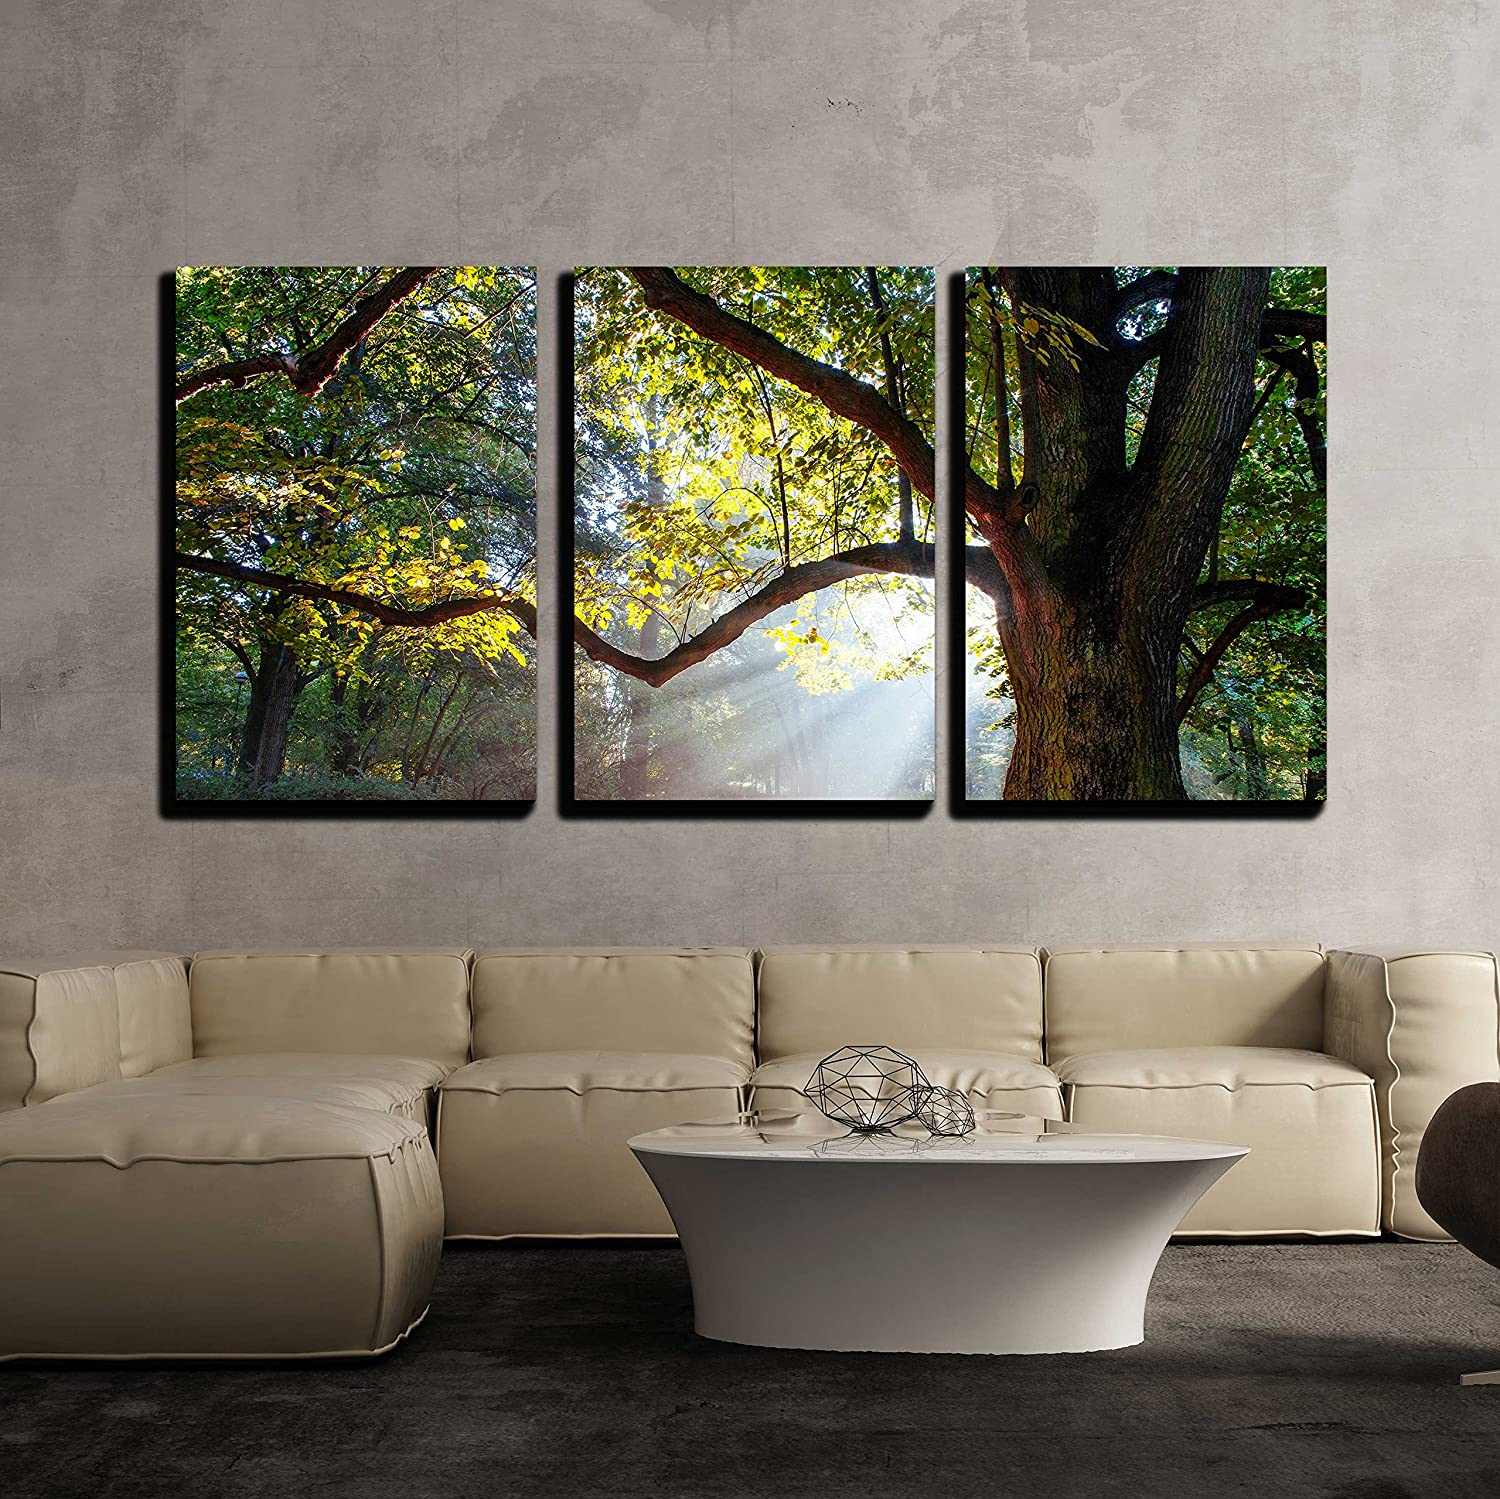 Wall26 - 3 Piece Canvas Wall Art - Mighty Oak Tree - Modern Home Decor Stretched and Framed Ready to Hang - 24 x36 x3 Panels